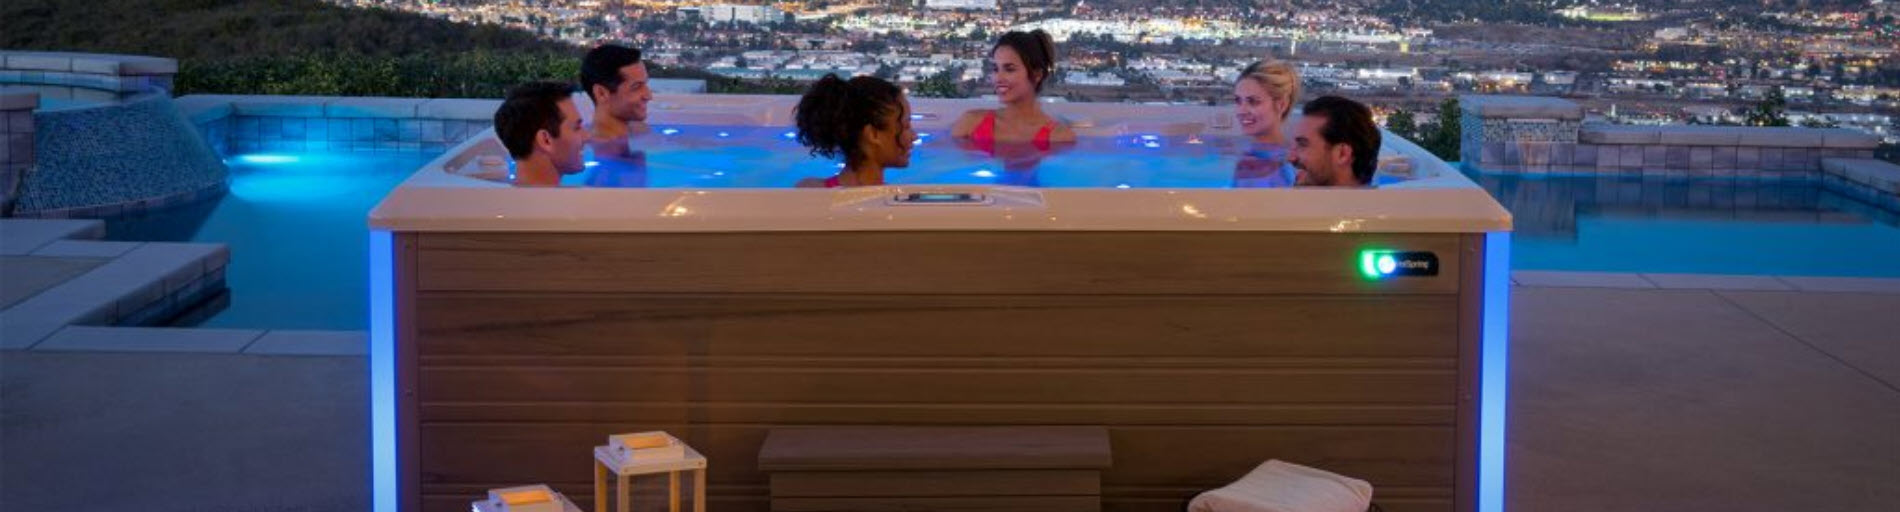 3 Smart Features to Look for in a New Hot Tub, Best Backyard Spas Union